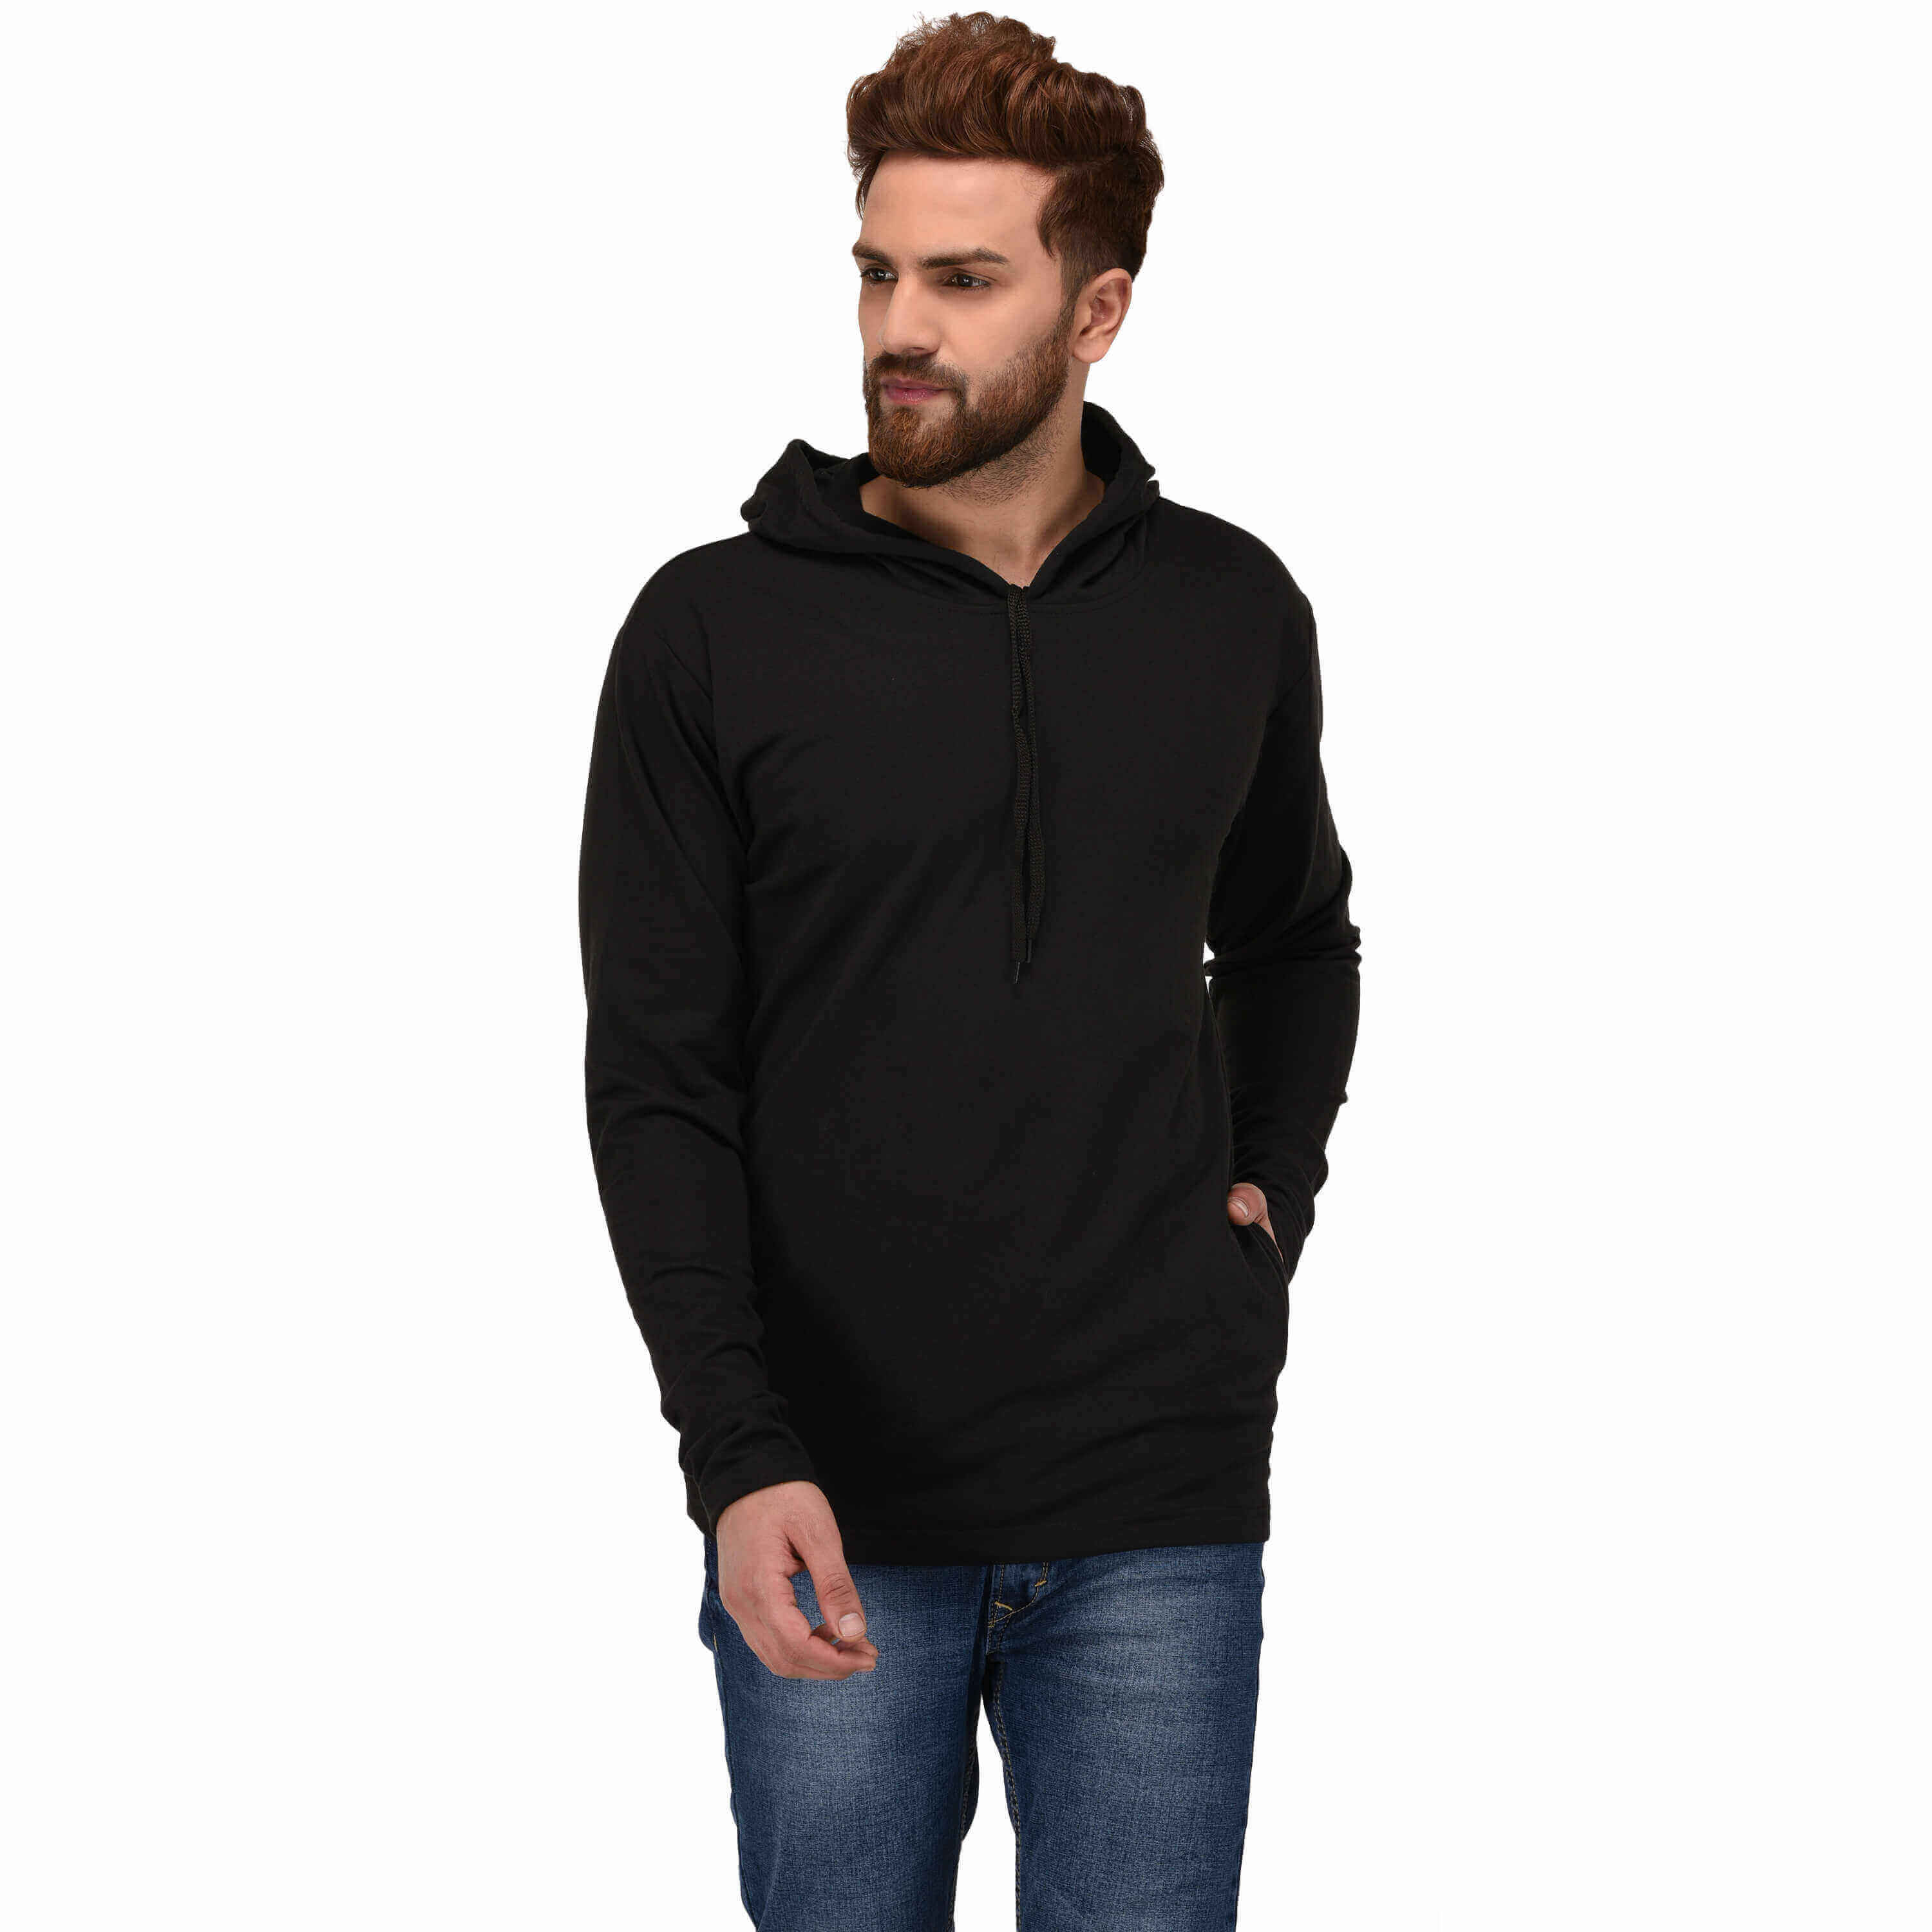 Sports Hoodies Manufacturers